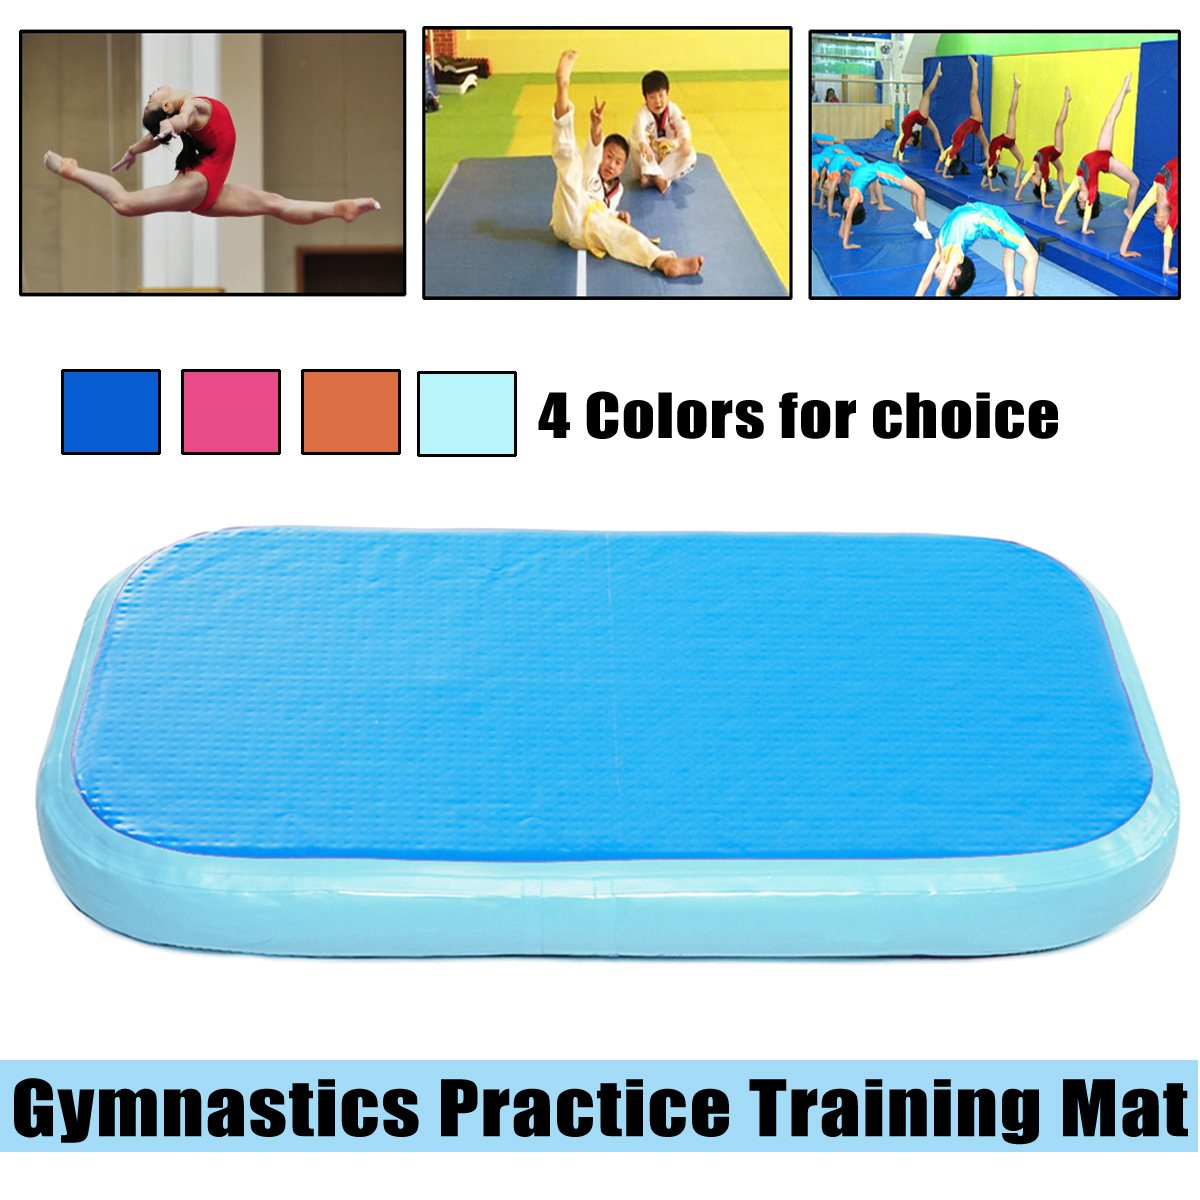 100x60x20cm Inflatable Air Tumbling Track Roller Home Training Matfor Gymnastics Gym Exercise Mat Air Track Tumbling Mat все цены